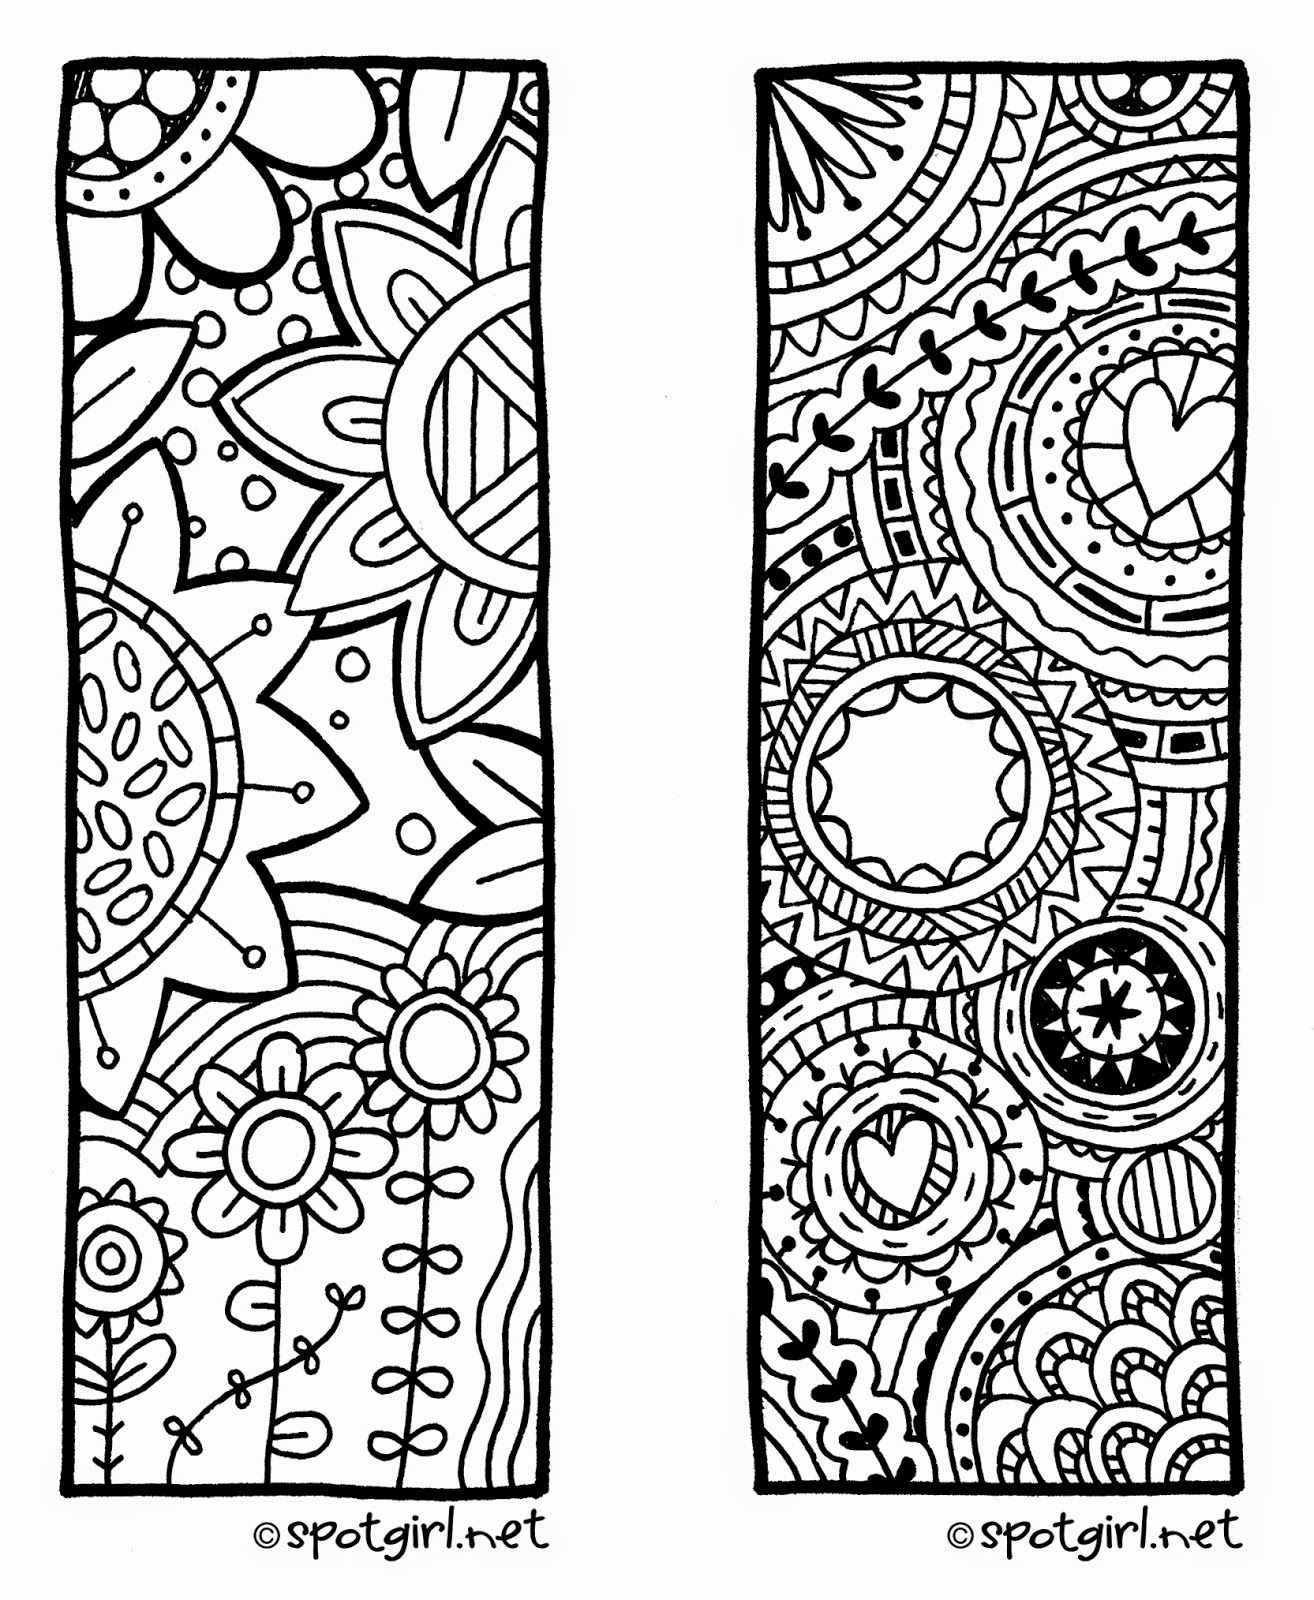 book marker template - zentangle bookmark printable from spotgirl hotcakes